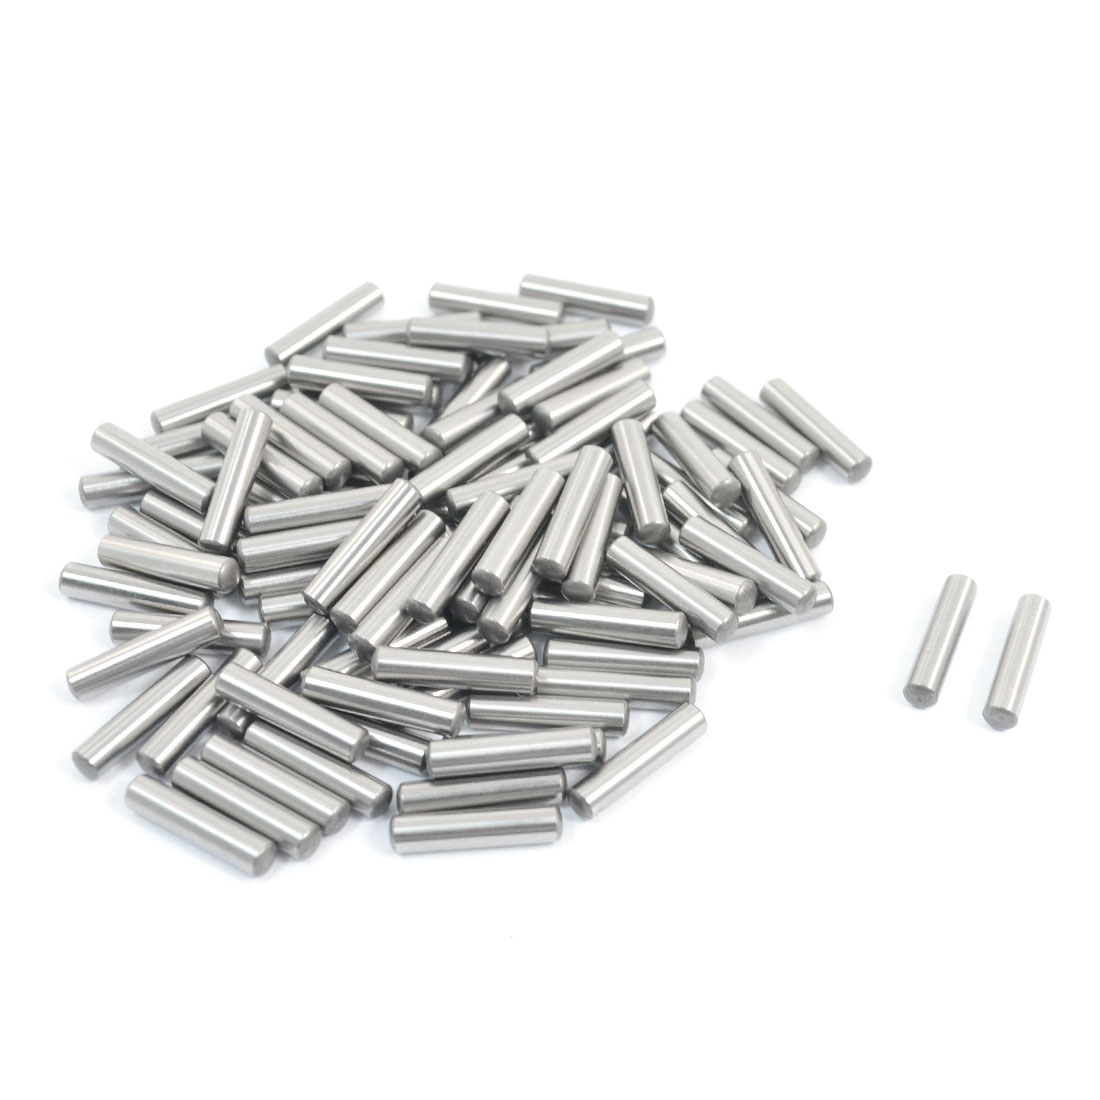 100 Pcs Stainless Steel 3.15mm x 14mm Parallel Dowel Pins Fasten Elements Silver Tone